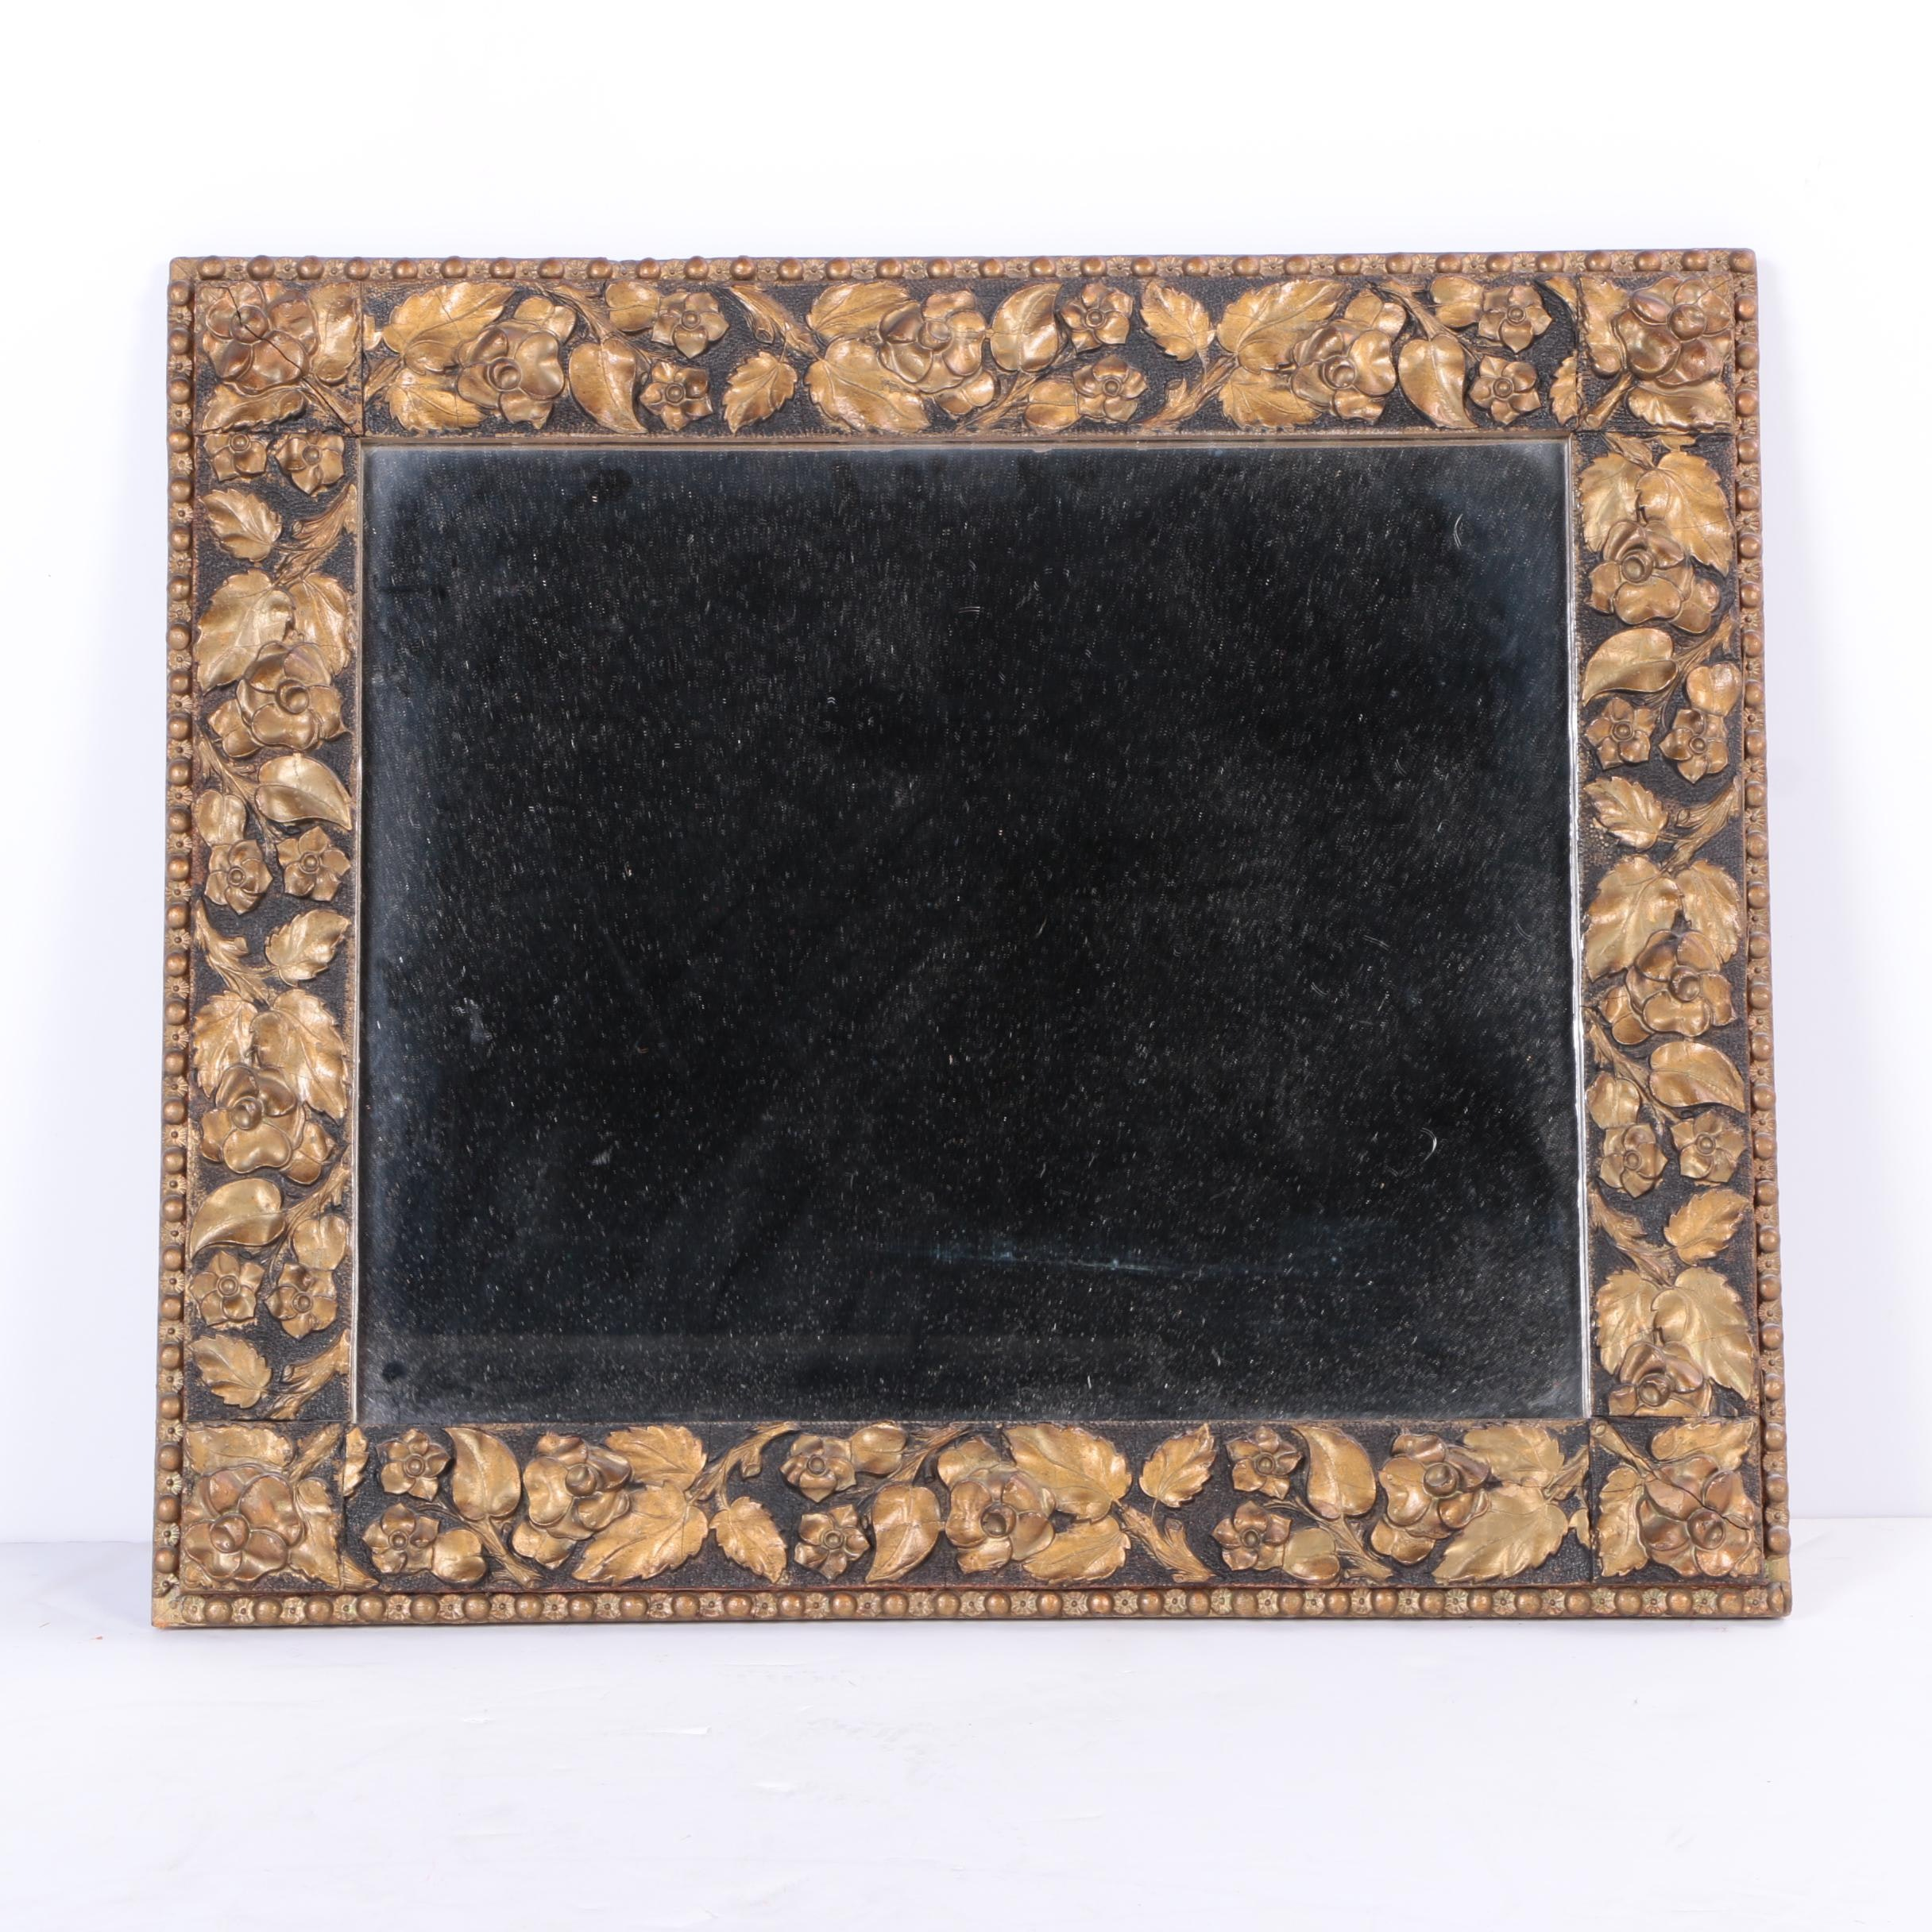 Wood Framed Floral Wall Mirror